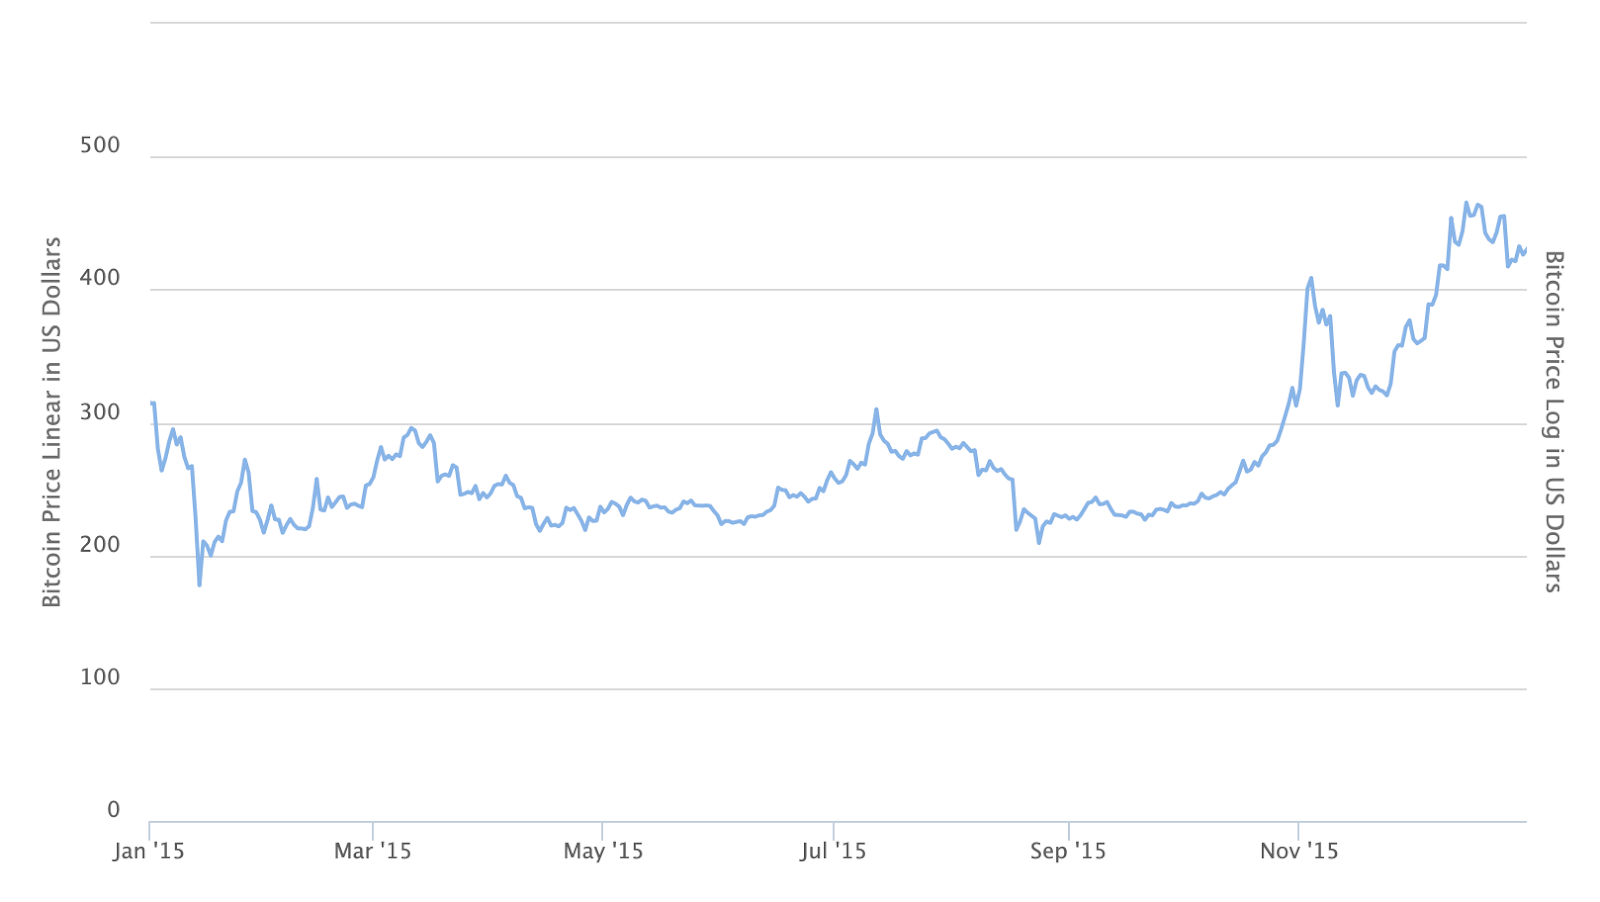 Bitcoin price in 2015